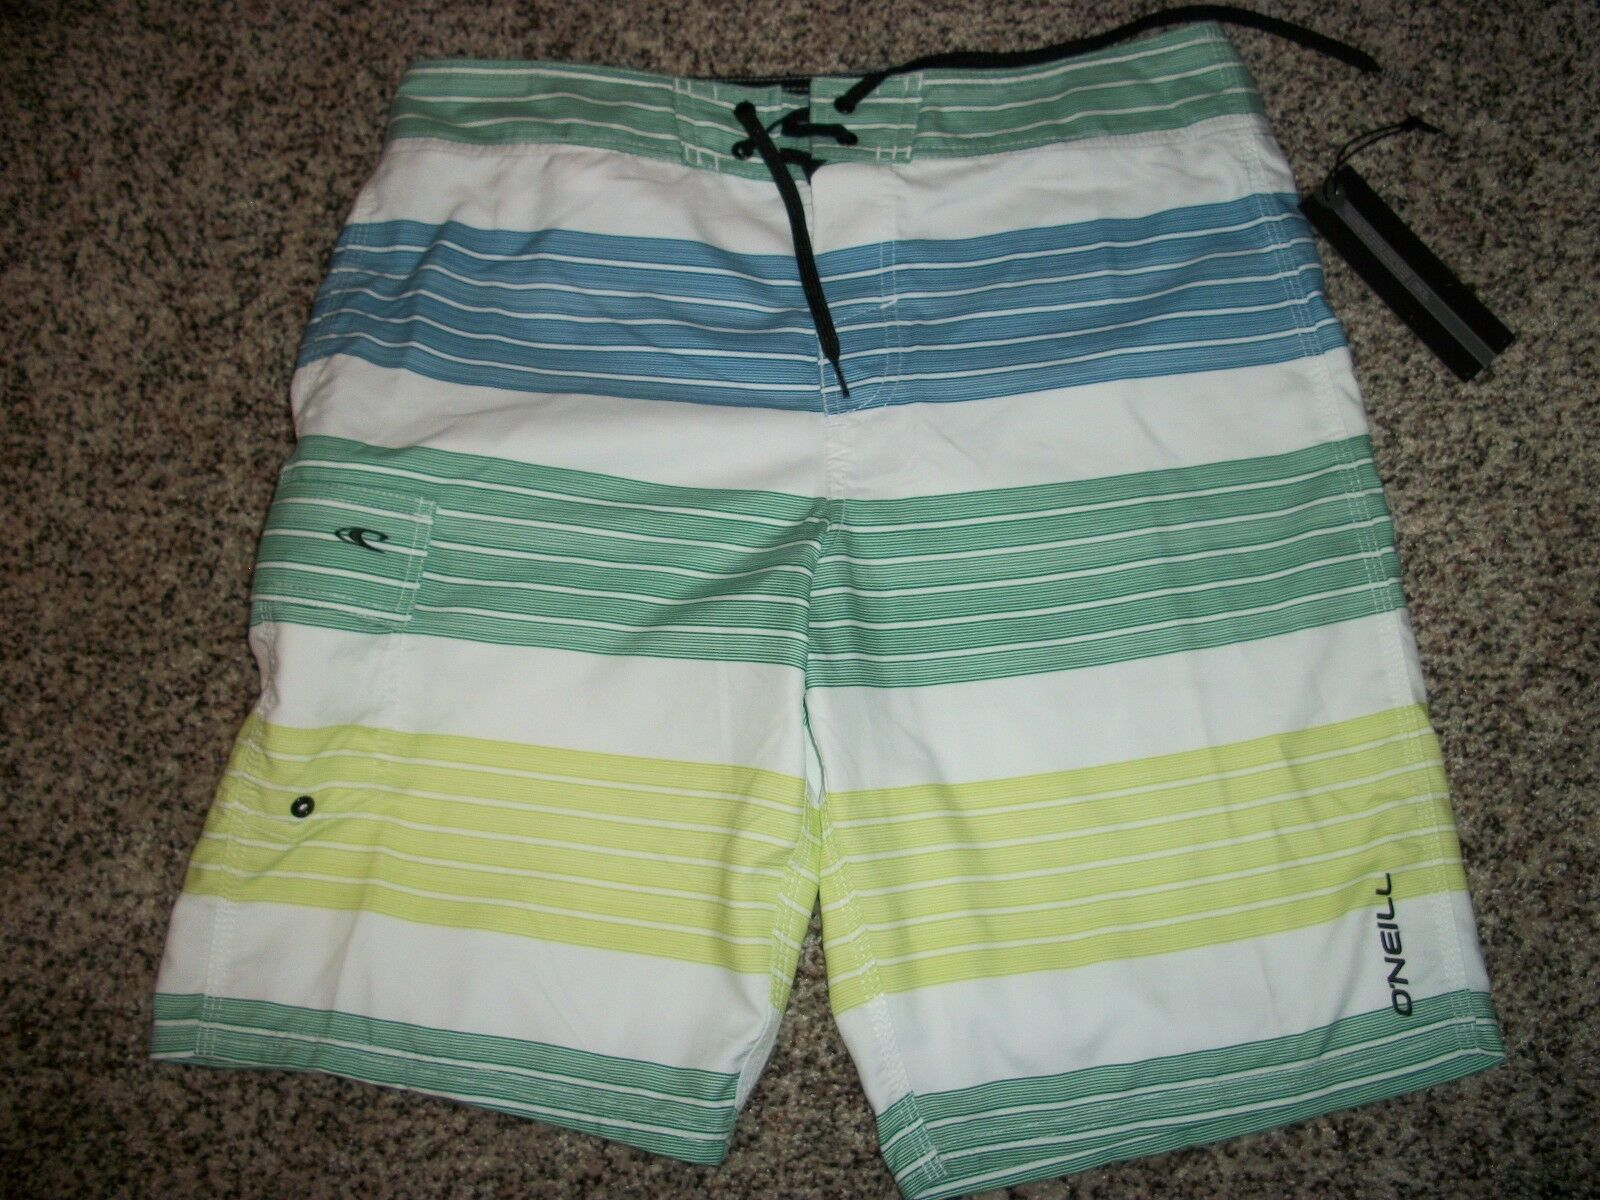 O'NEILL New NWT Mens Board Swim Shorts White bluee Green Stripe 32 34